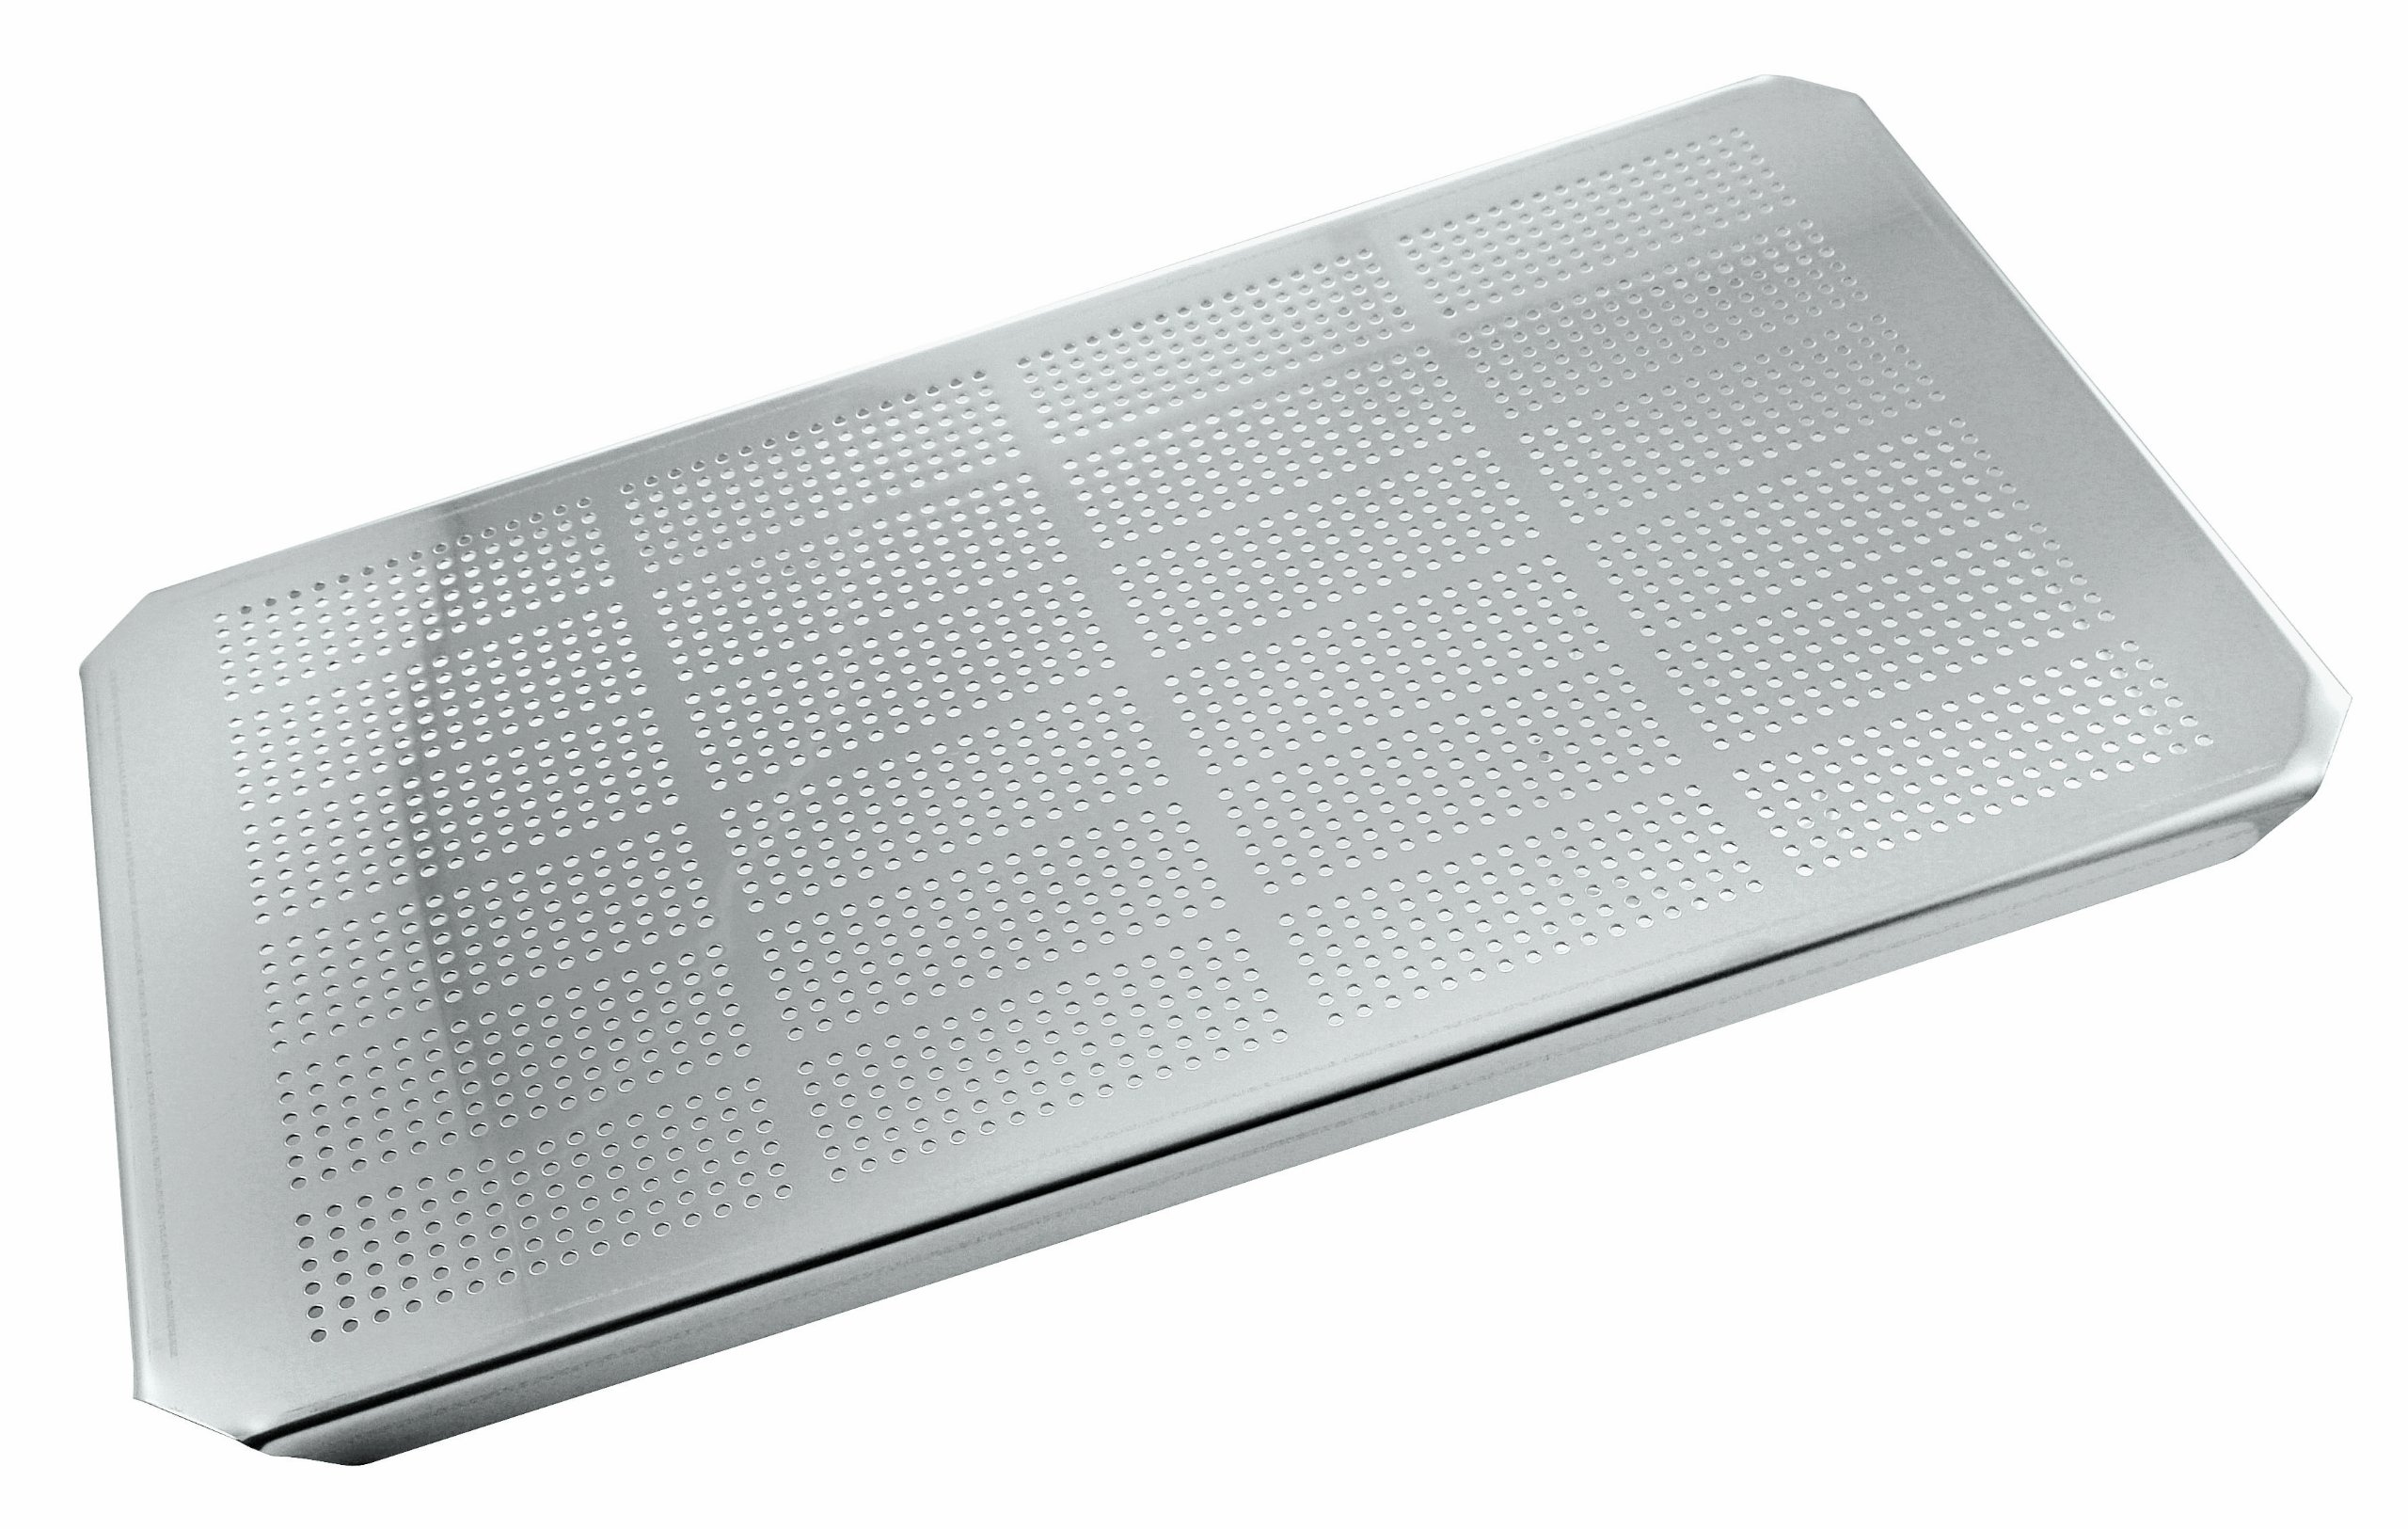 Paderno World Cuisine 12 1/2 inches by 10 1/2 inches Stainless-steel Drainer Plate for Hotel Pan - 1/2